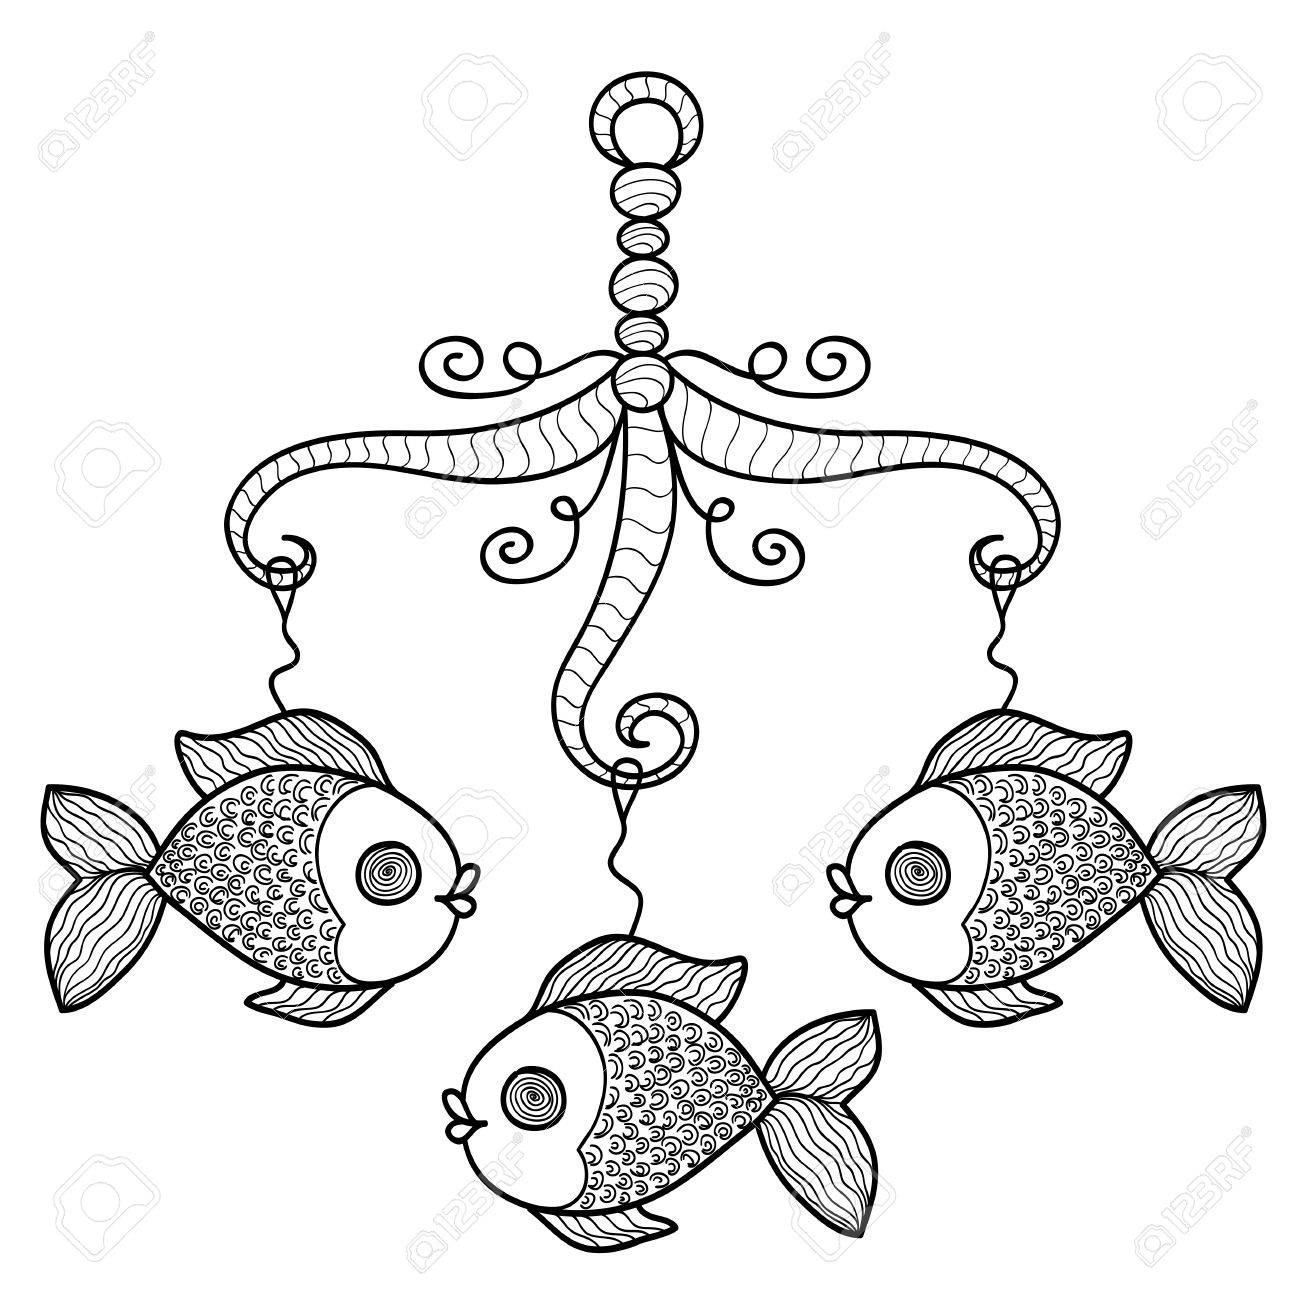 1300x1300 Hand Drawn Baby Crib Hanging Mobile Toy With Fishes. Vector Sketch